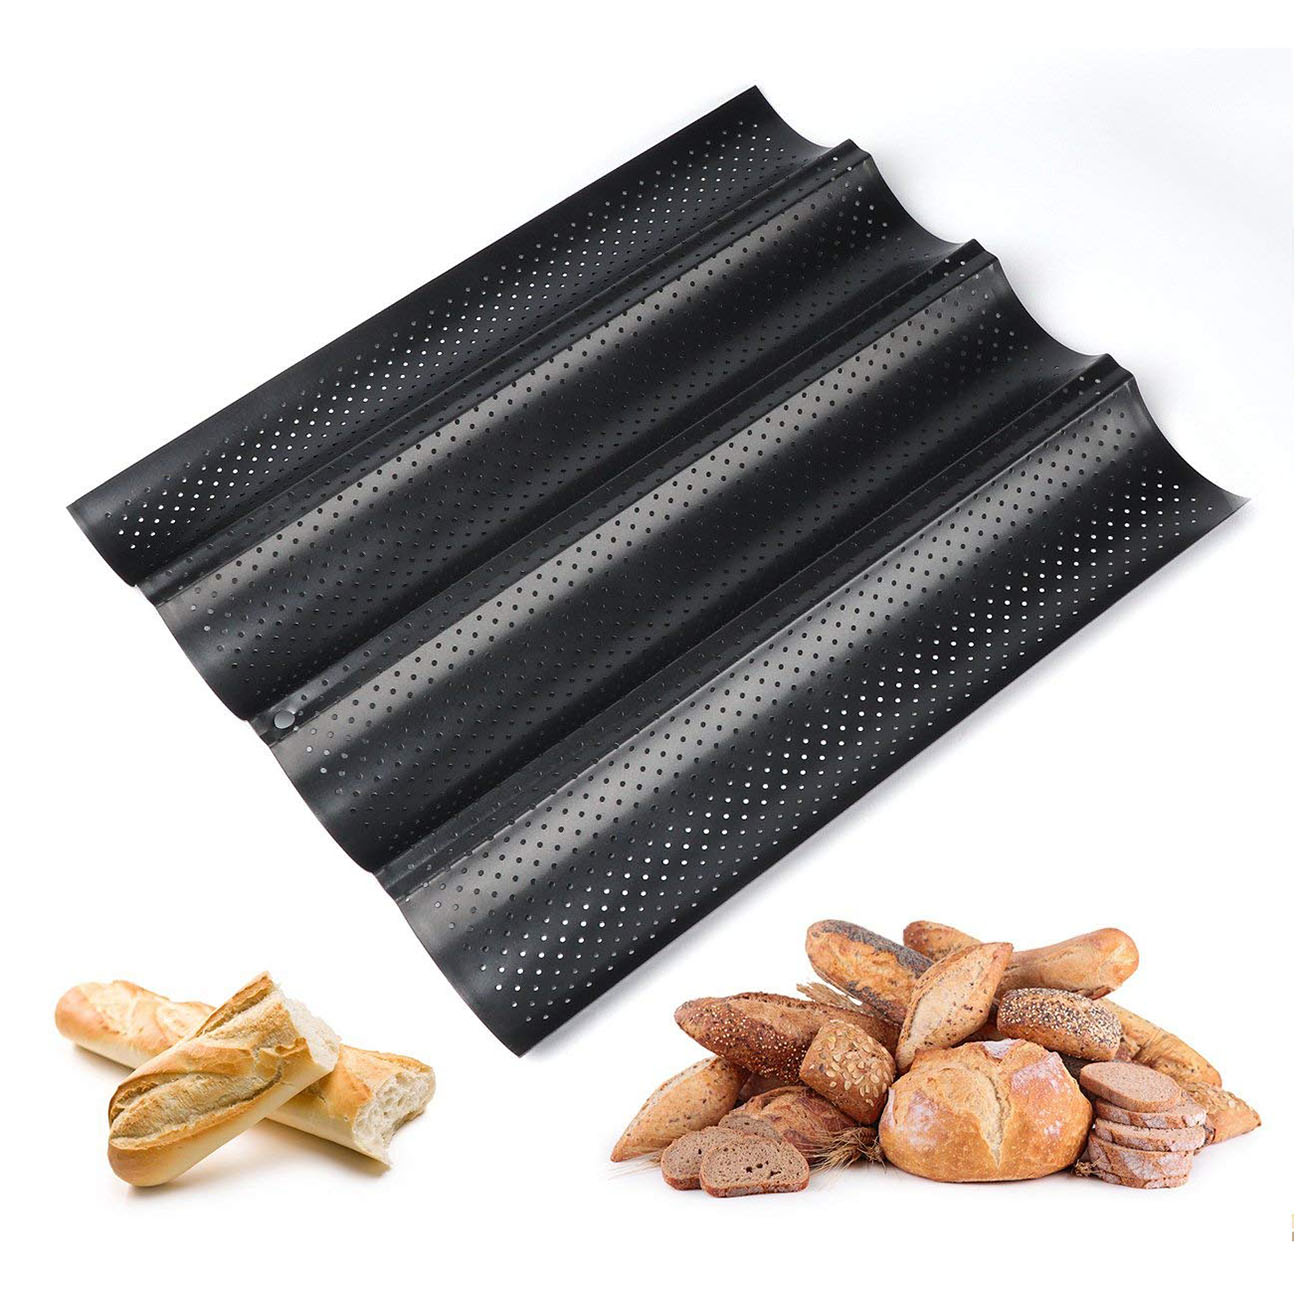 Baguette sheet baguette baking tray baguette mold with non-stick coating for baking, carbon steel